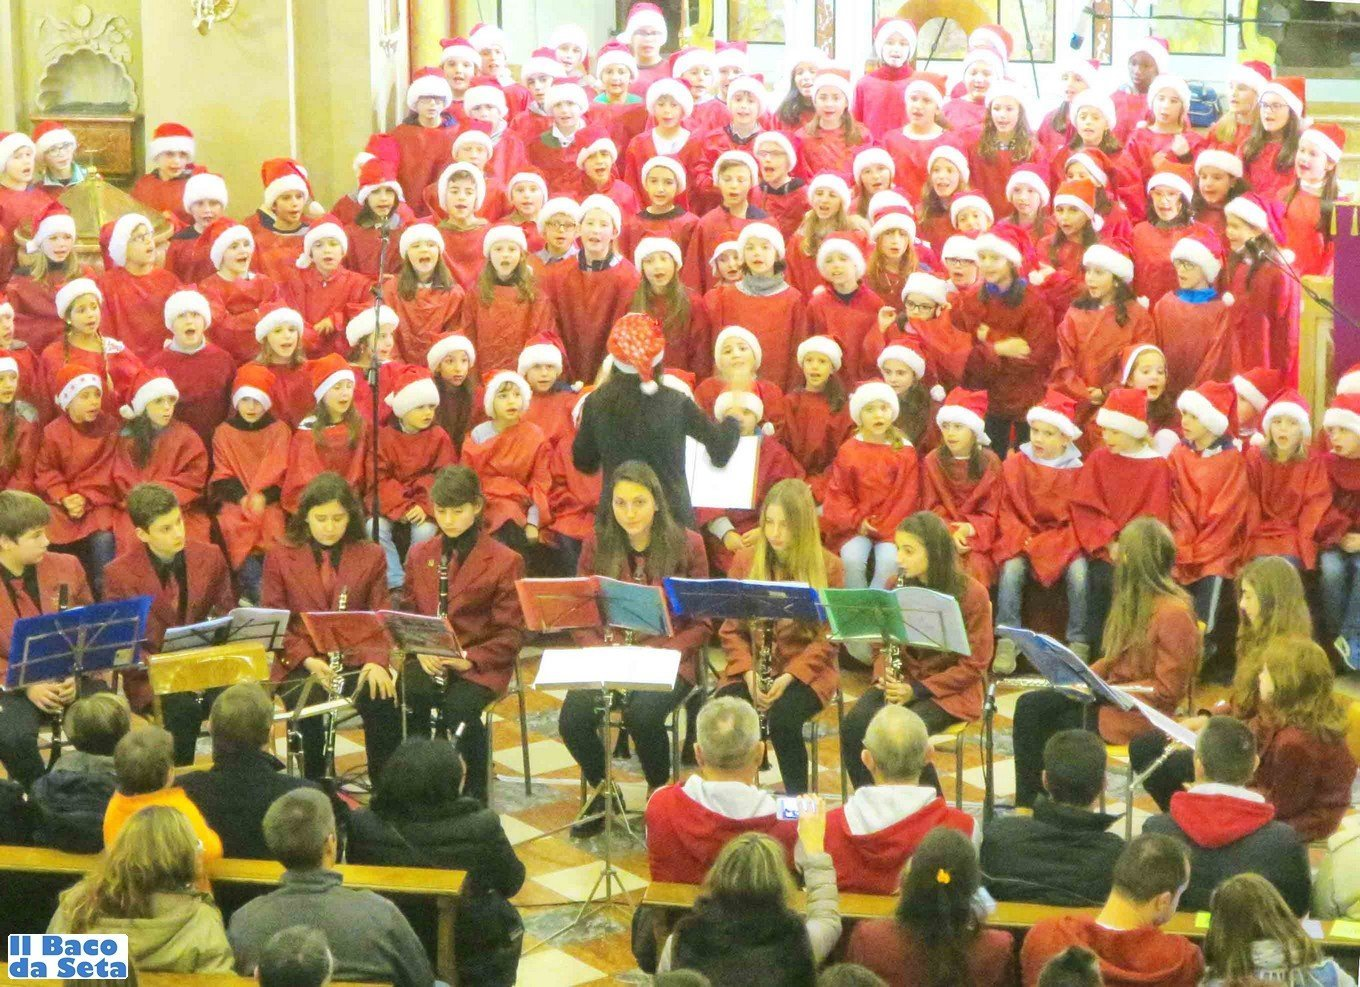 concerto-stelle-abeo-palazzolo-natale-2016-2